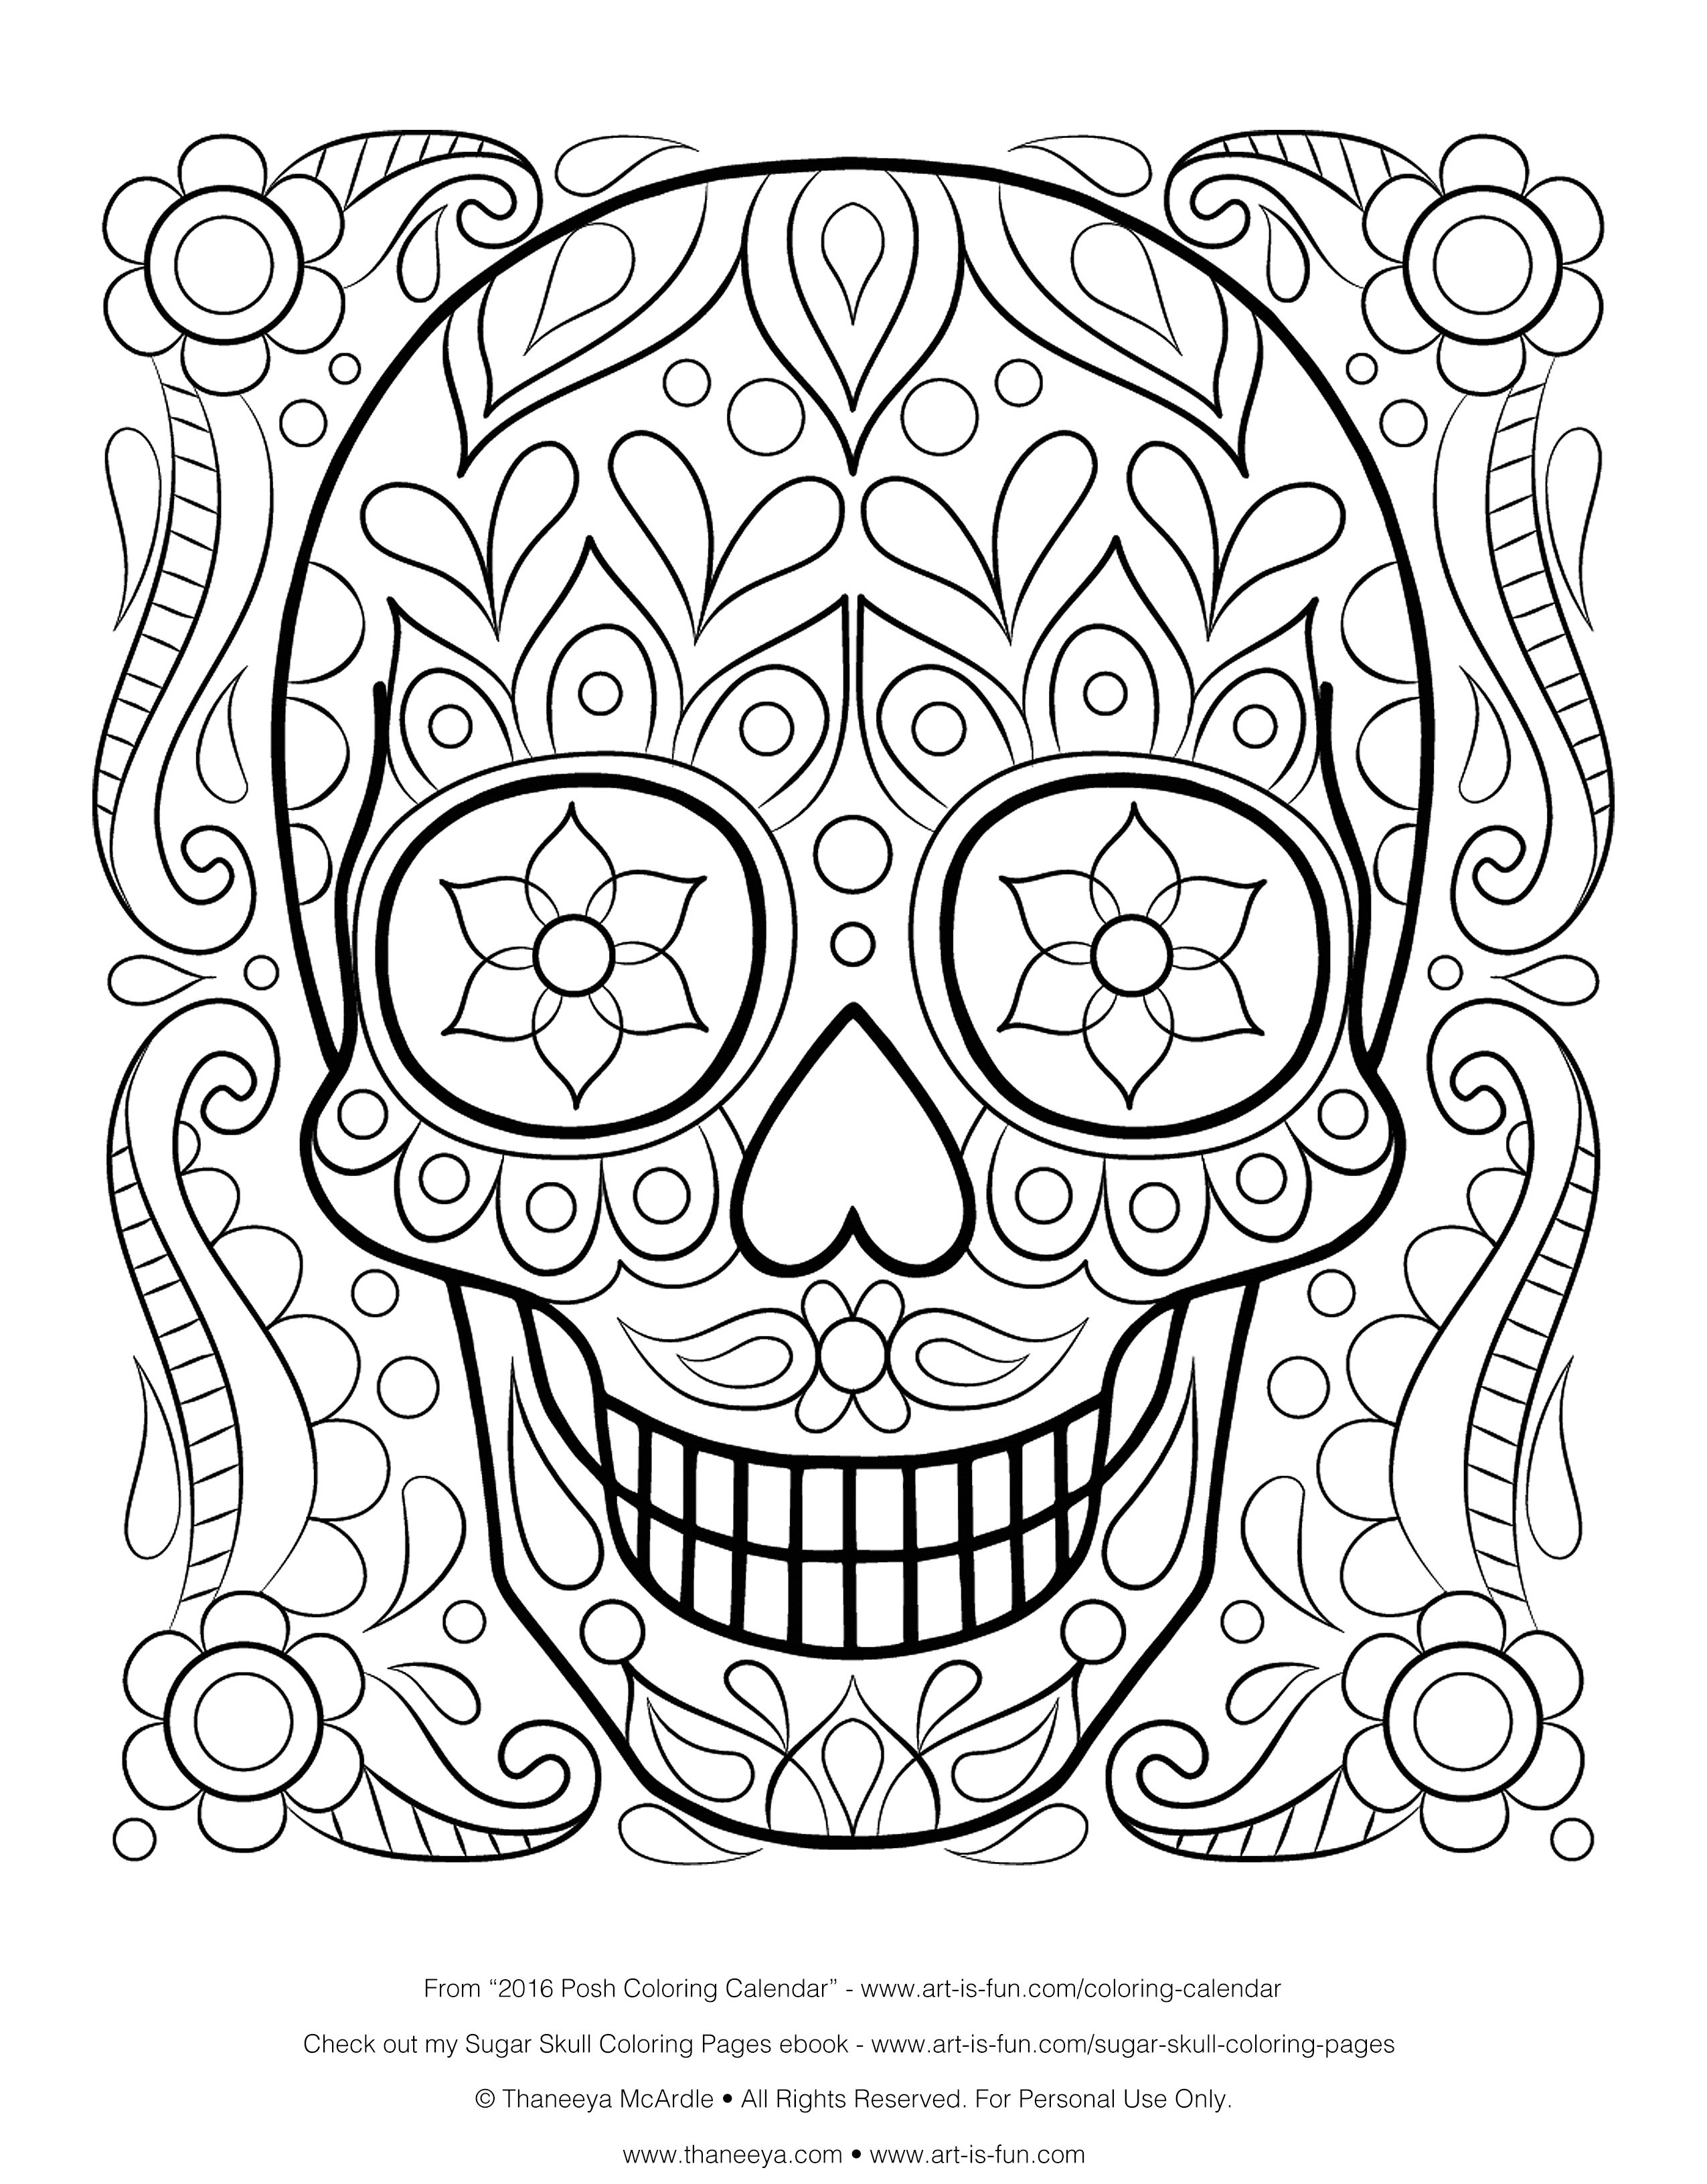 skeleton head coloring pages Download-Free Printable Skeleton Coloring Pages Fresh Skeleton Head Coloring Pages Heathermarxgallery Free Printable Skeleton Coloring 13-h